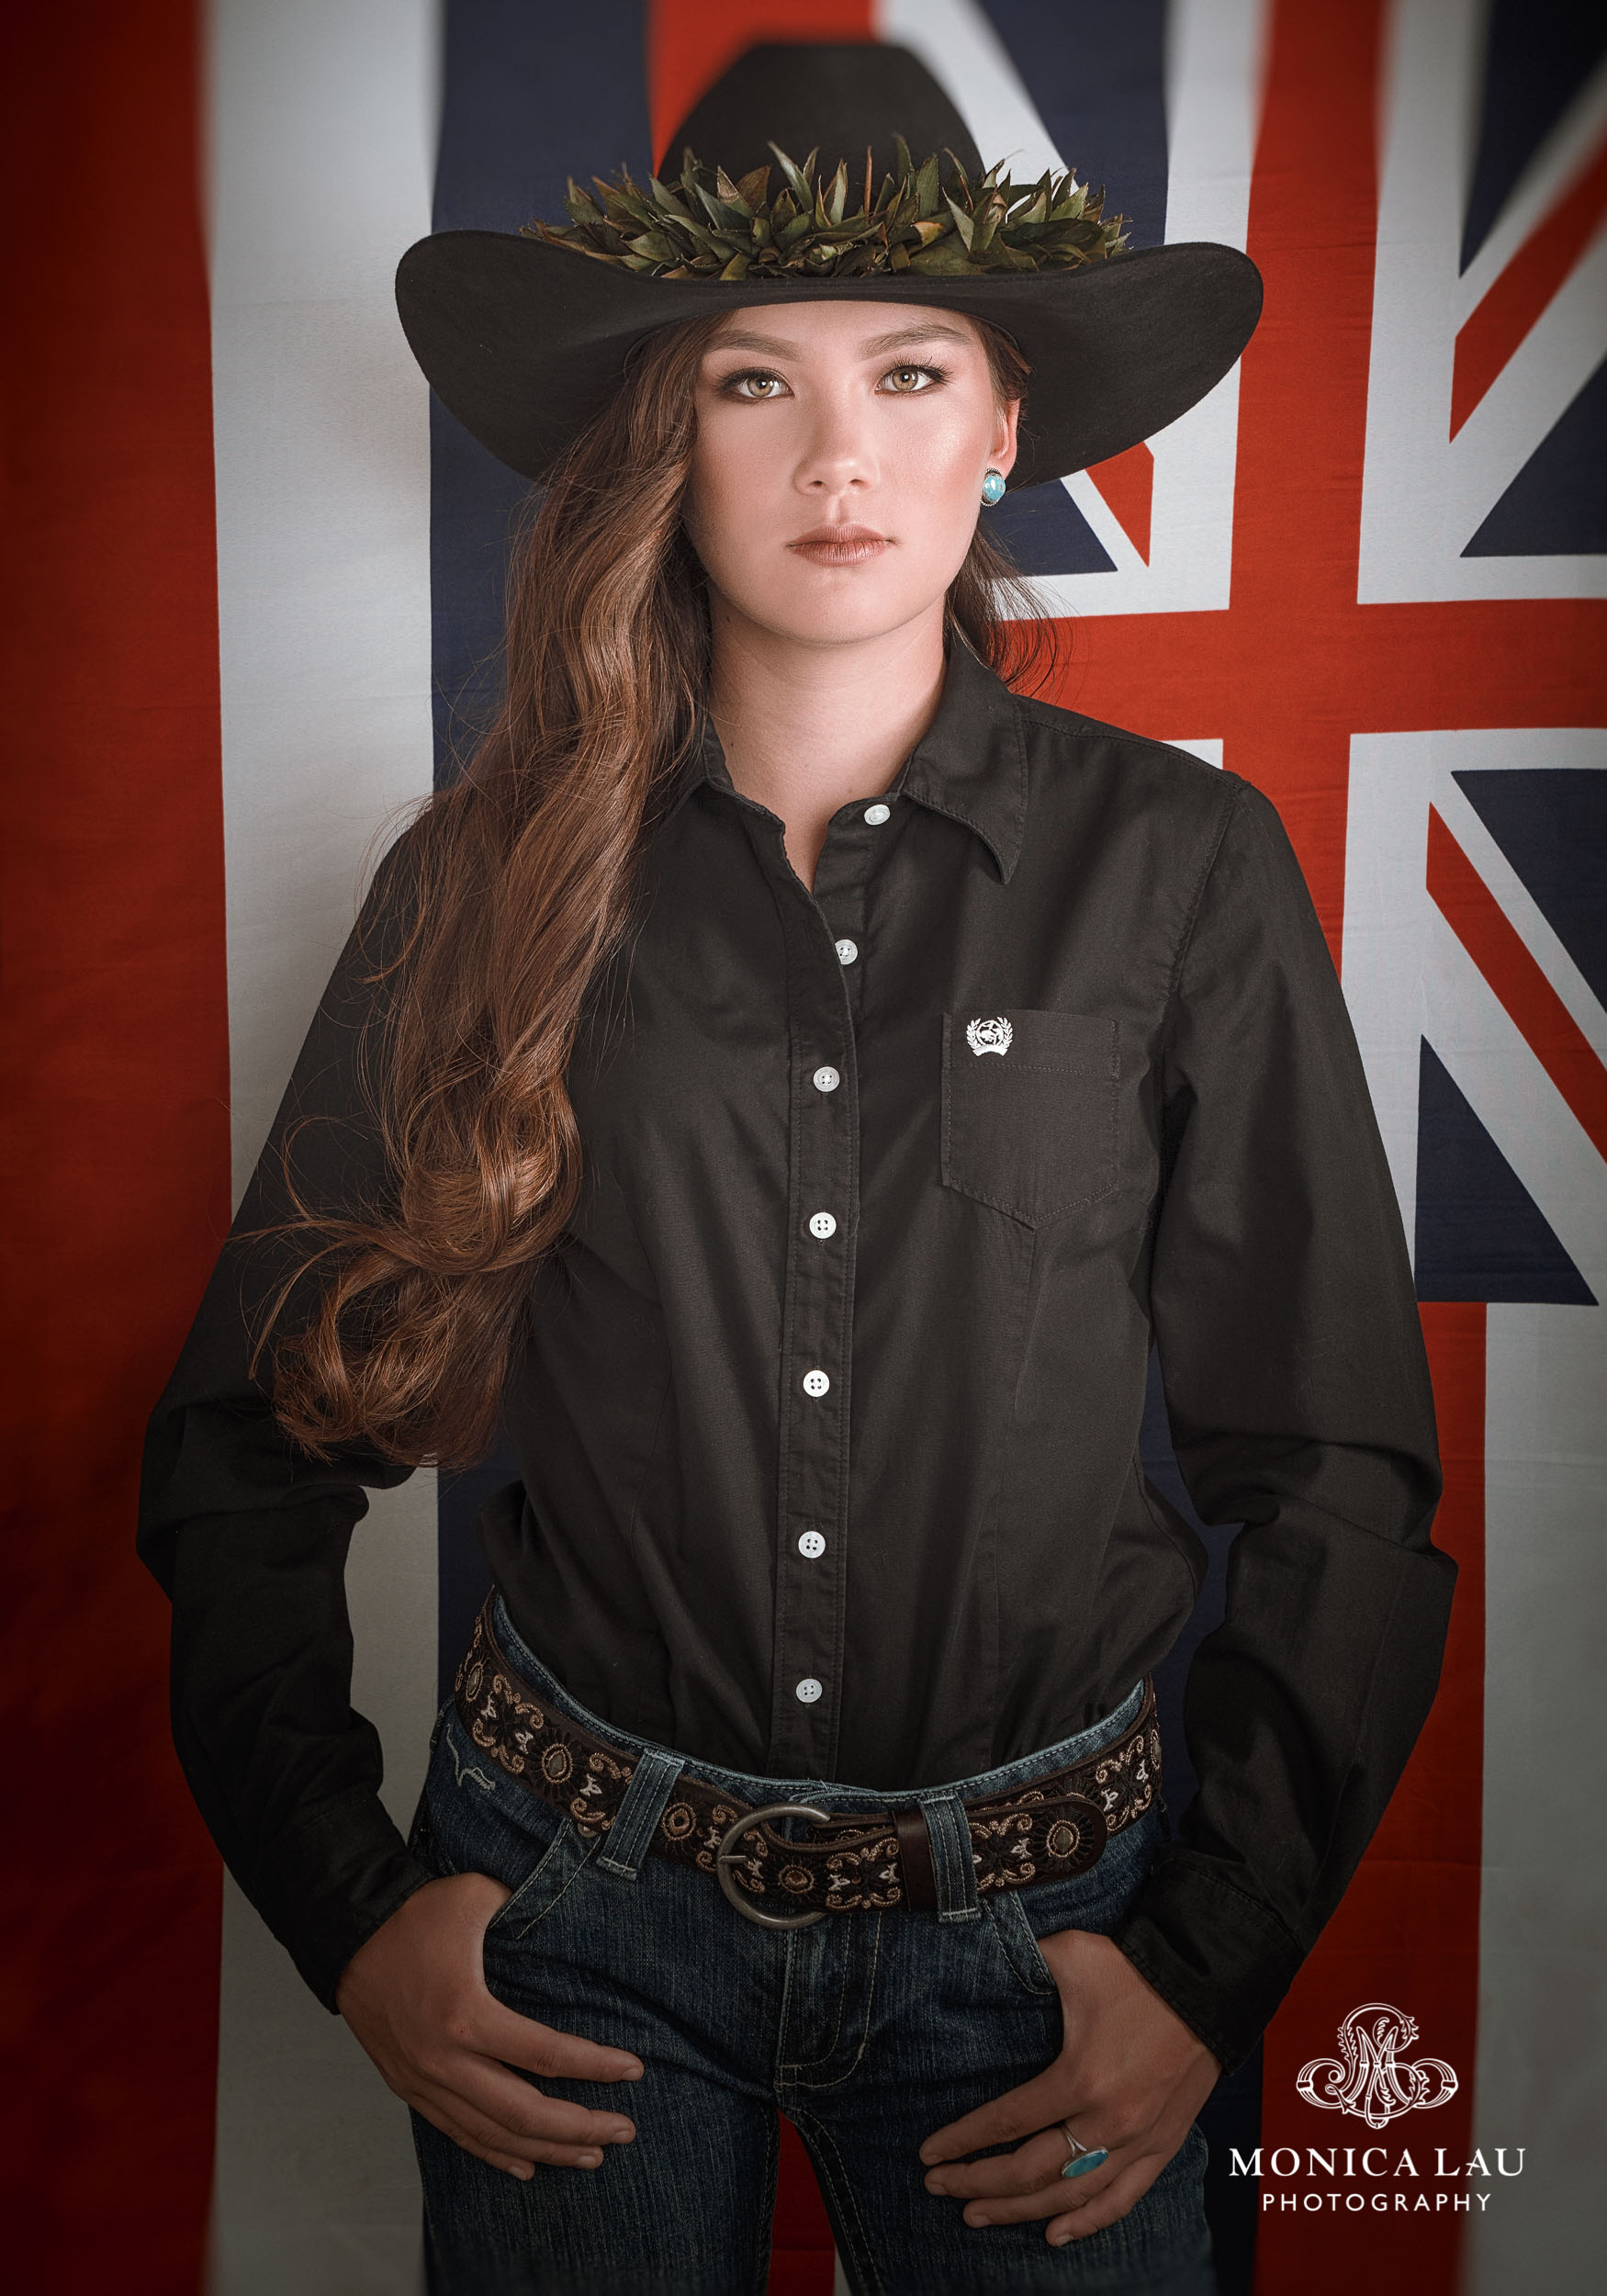 19MonicaLauPhotography-ShelbyWallenCowgirlPortraits0500.jpg